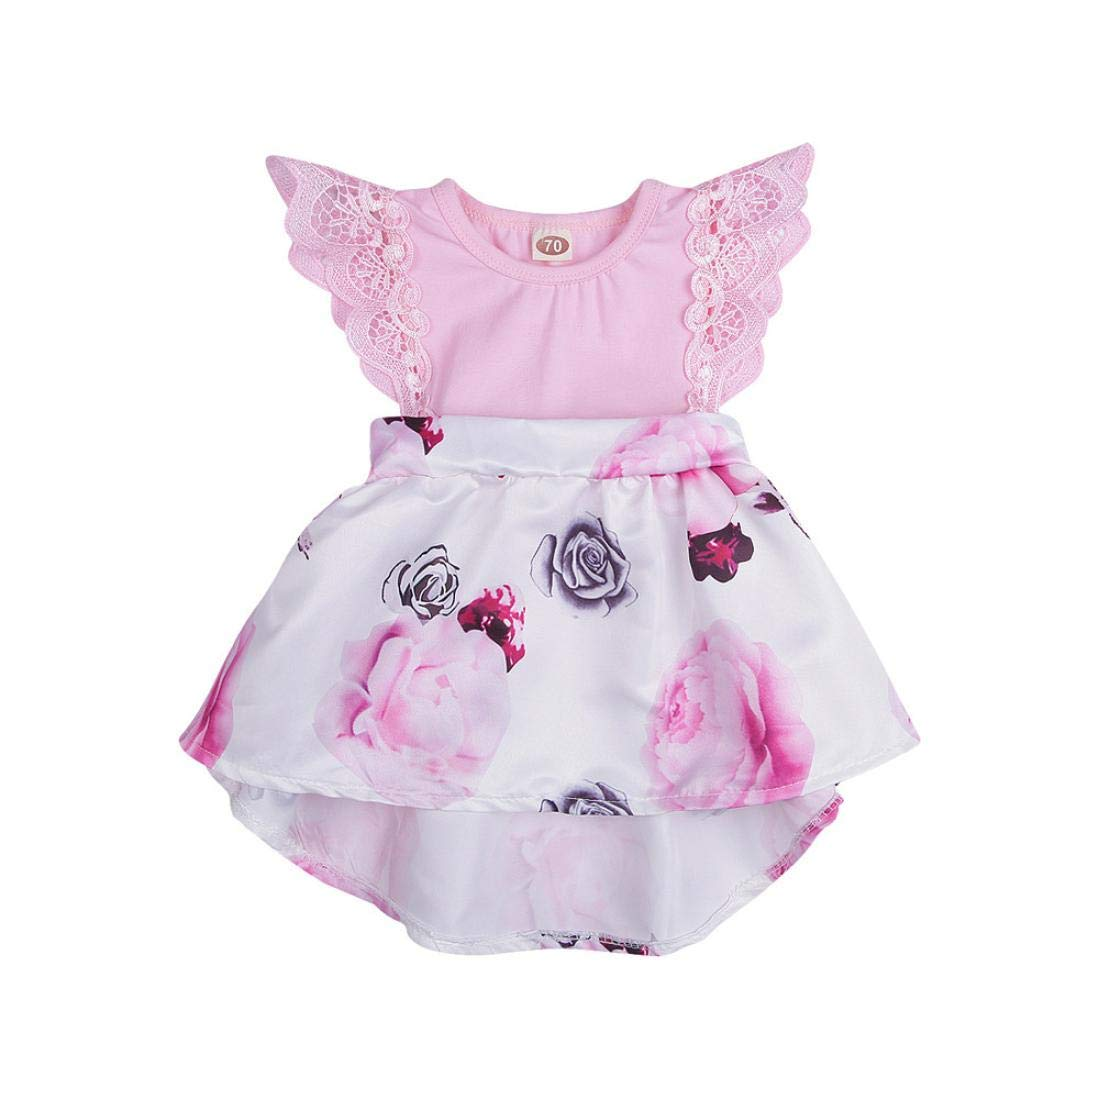 c73b199e8 Amazon.com: Toddler Infant Baby Girls Dress Floral Print Lace Princess Party  Dresses Outfits (6-12 Months, Pink): Beauty